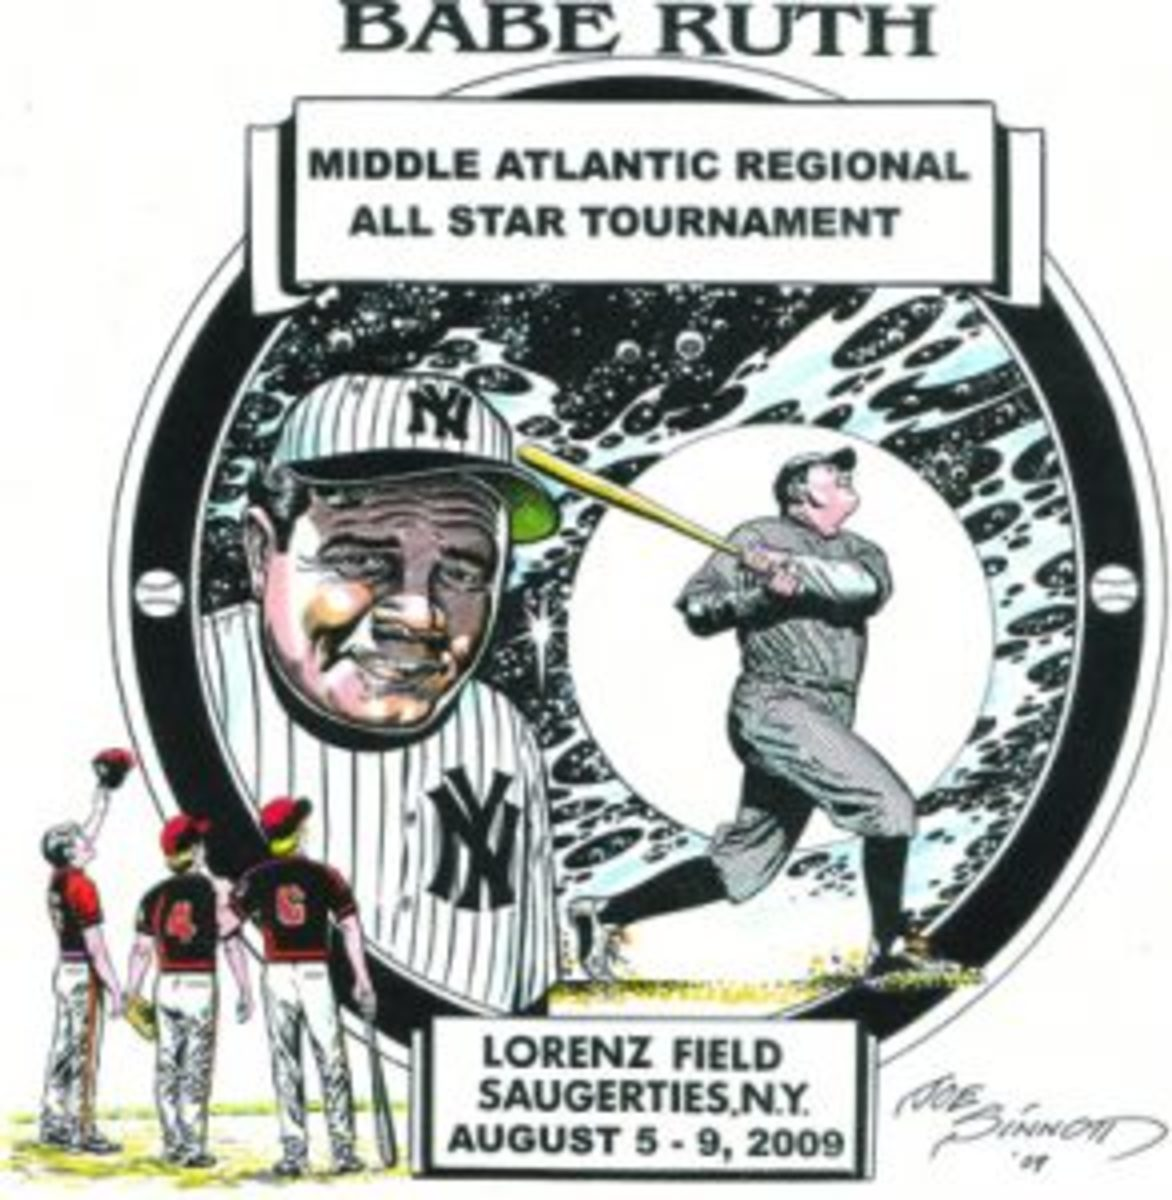 There are times when Joe Sinnott donates his time and talent to create items for charitable and community events, such as state and regional Babe Ruth Baseball Tournaments in Saugerties, New York.